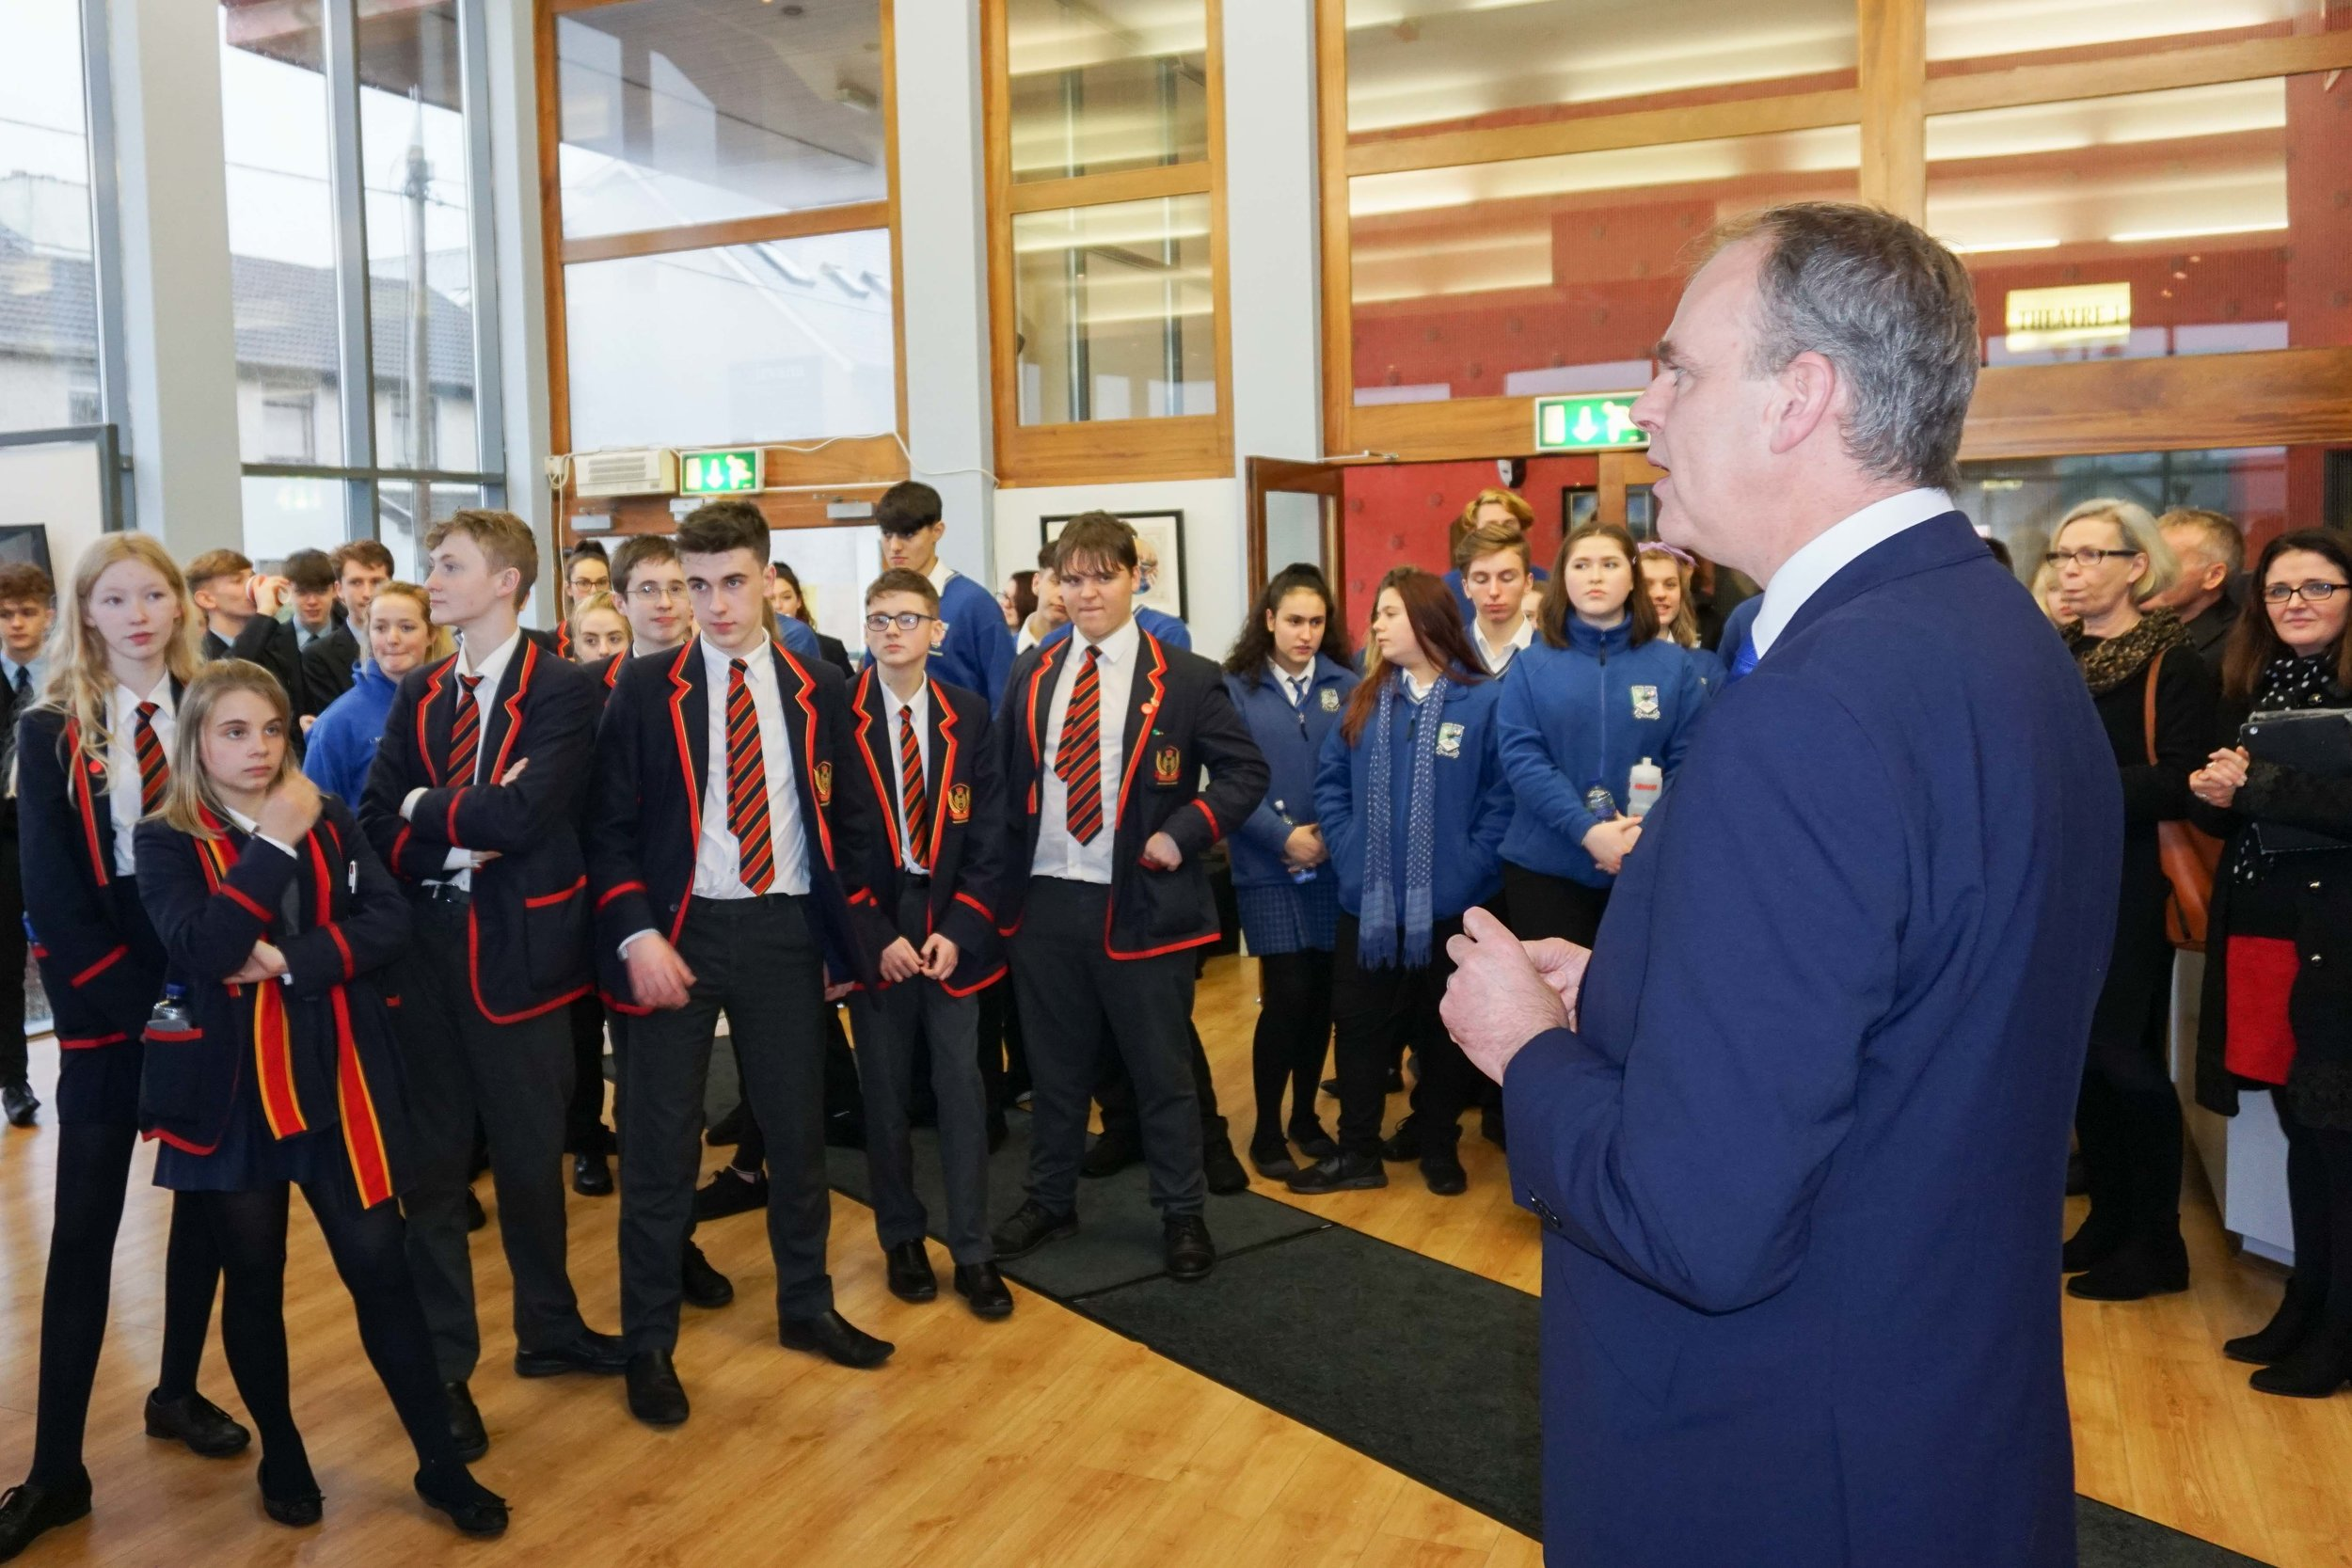 Minister Joe Mc Hugh met secondary school students from Enniskillen and Ballyshannon at an Allingham Arts Festival cross-border schools event, where he had an influential conversation with one student about the downgrading of History as a subject in the Junior Cycle curriculum.